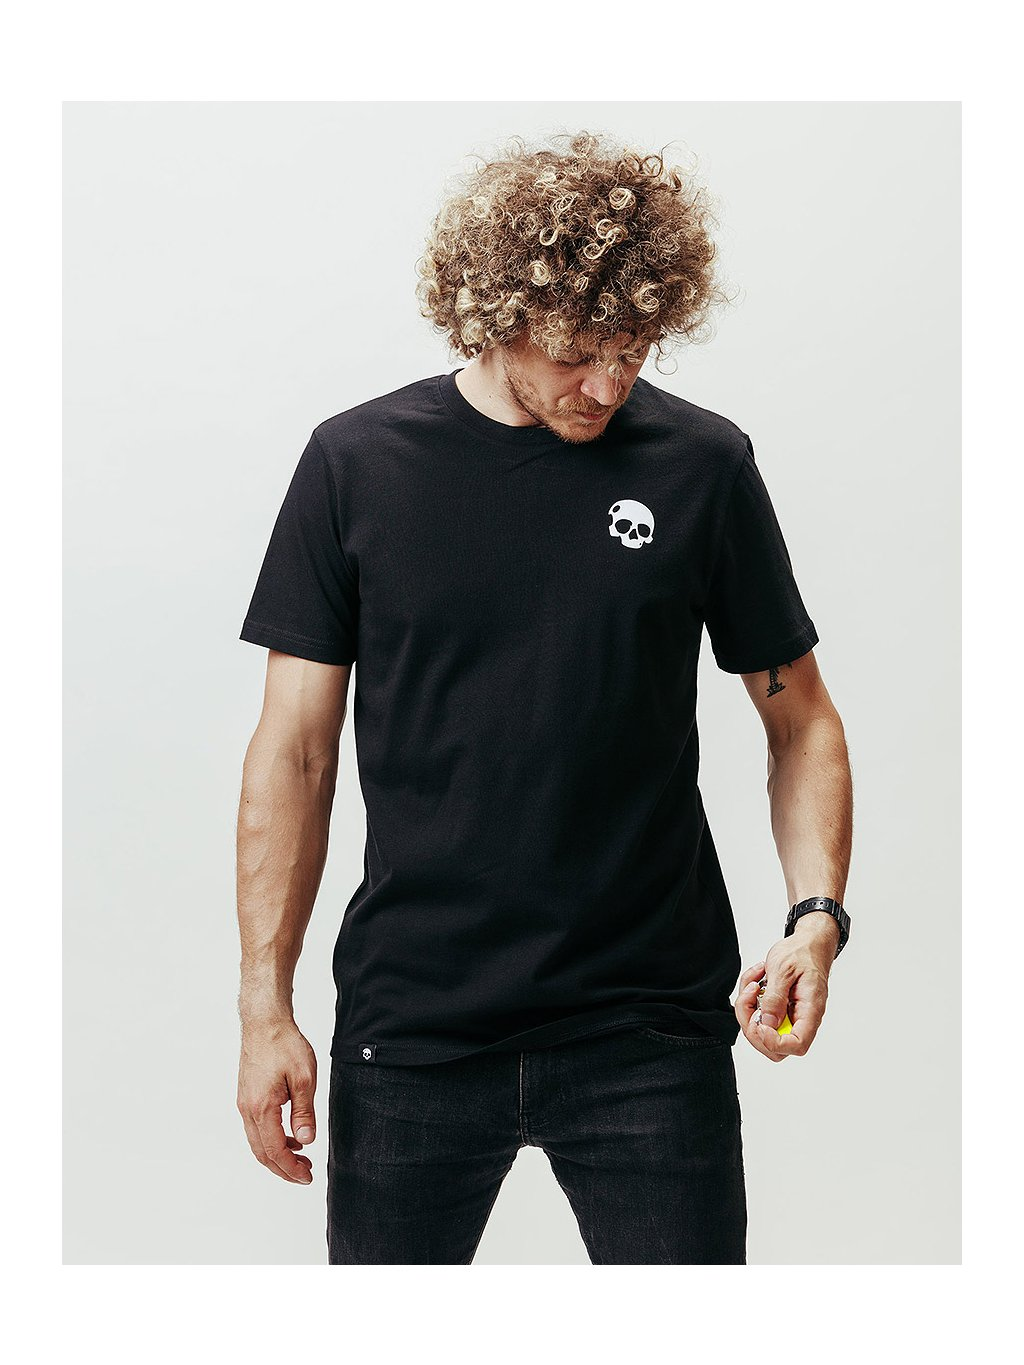 security blacktee white 2